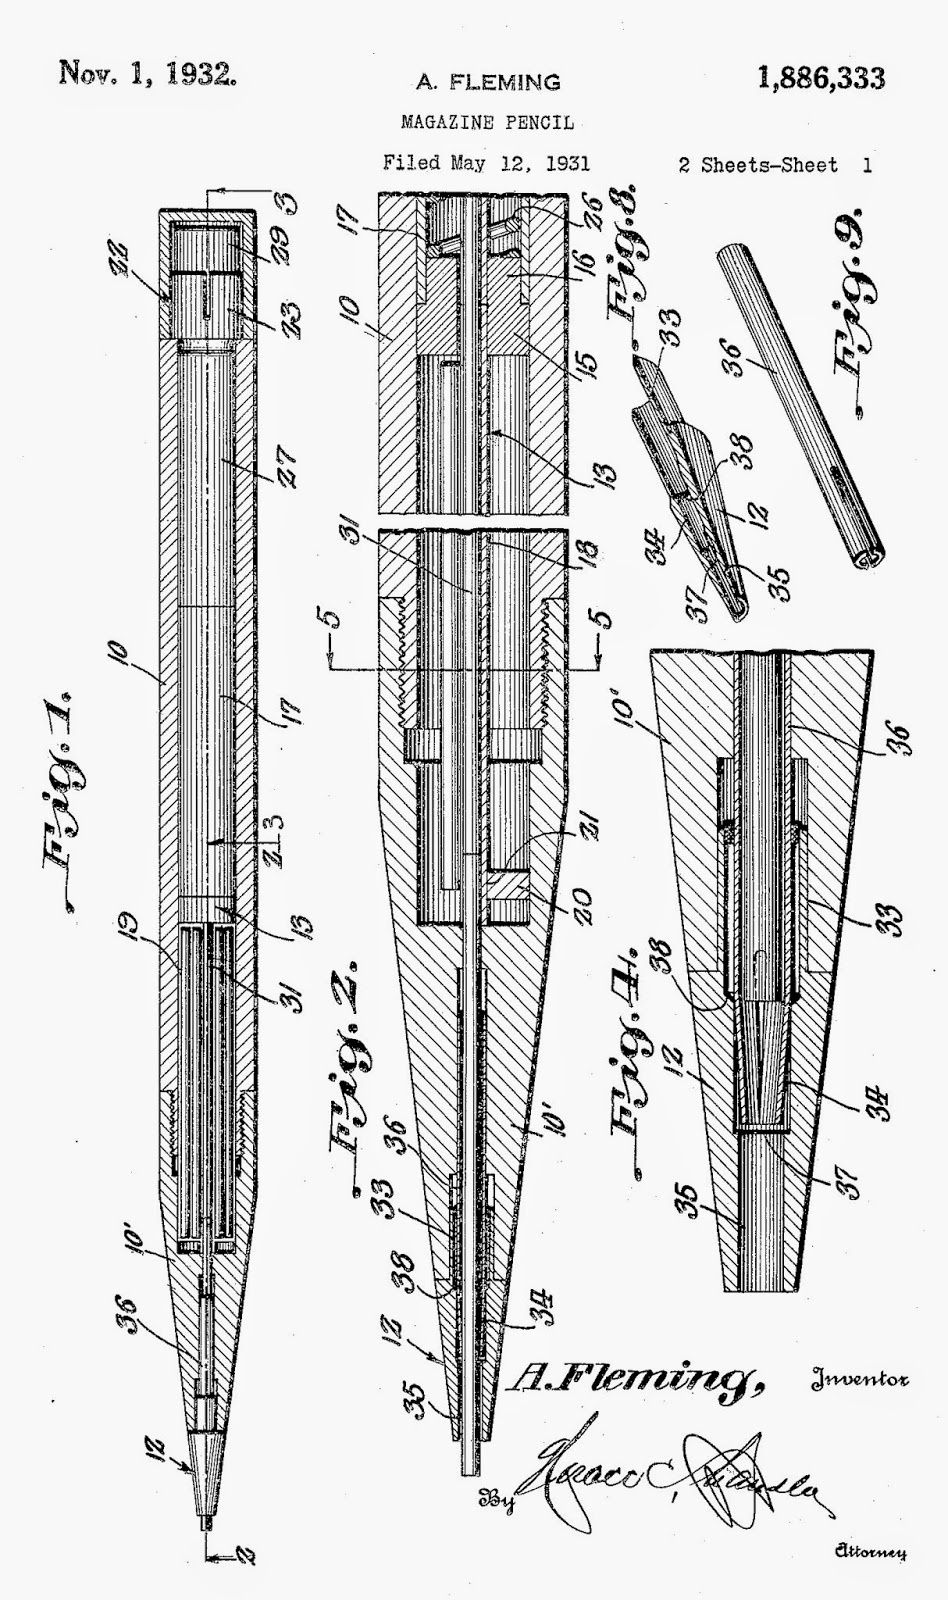 The Leadhead's Pencil Blog: The Patent Book Passes a Harsh